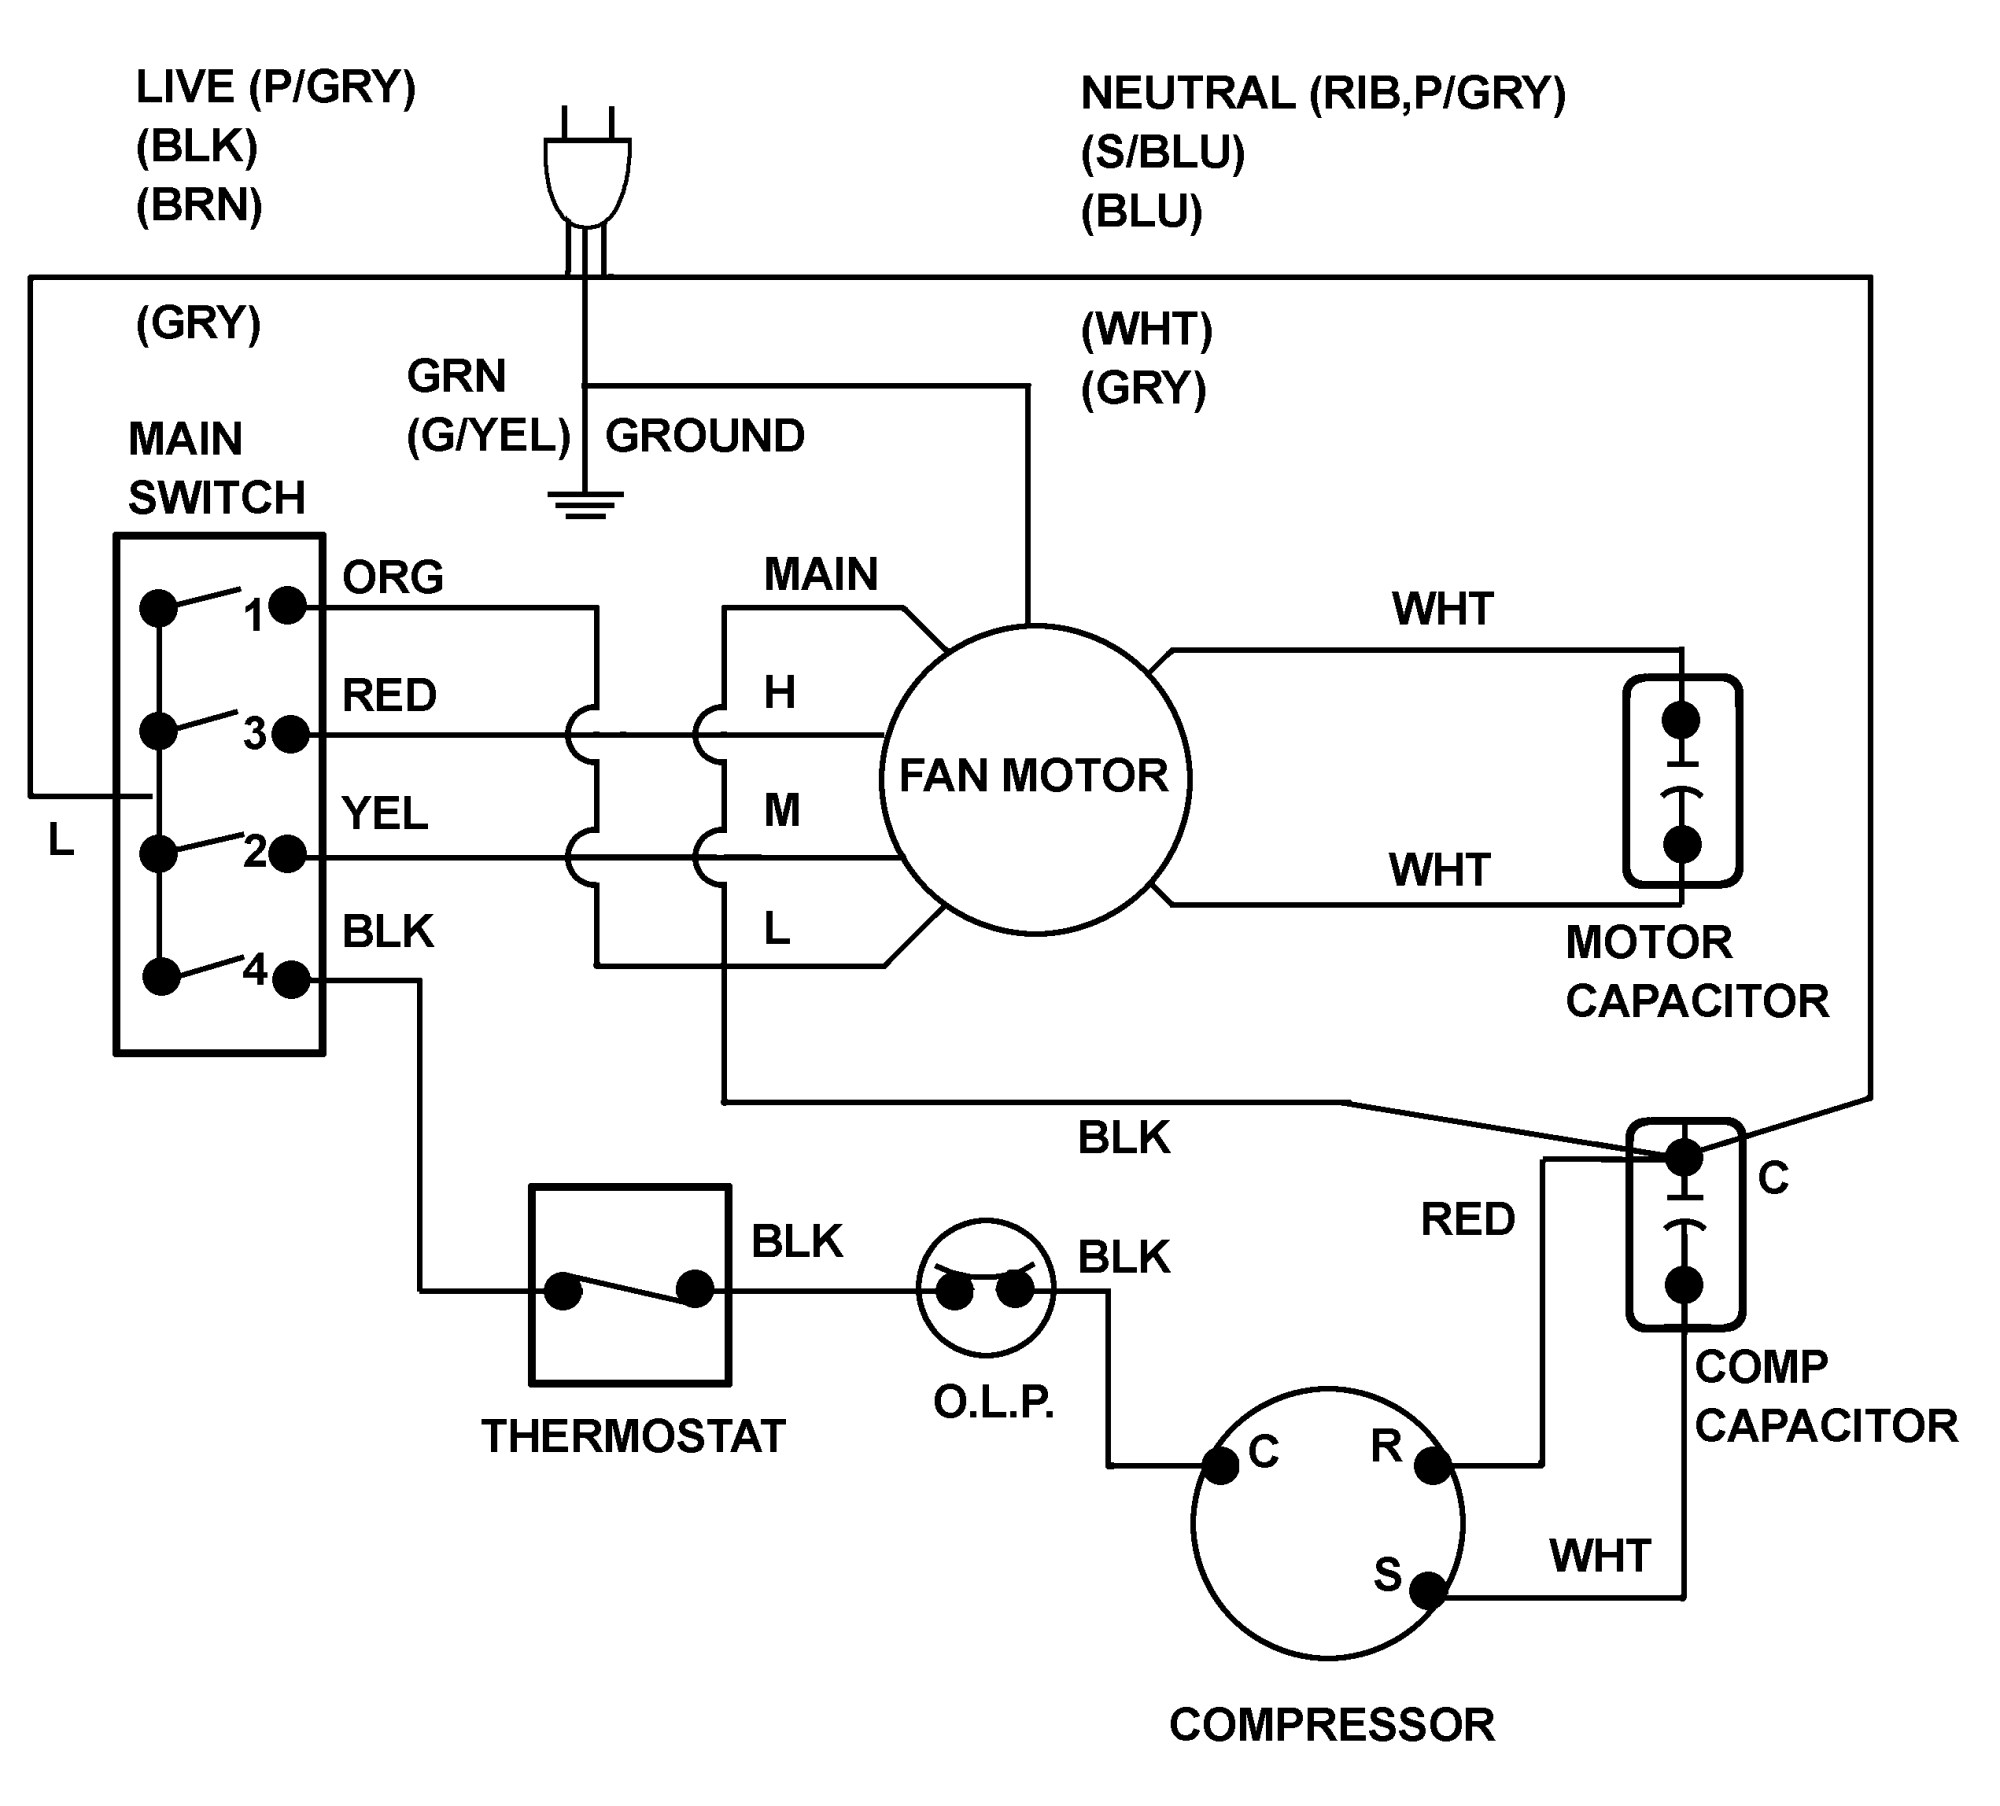 hight resolution of ge ac diagram wiring diagram expert